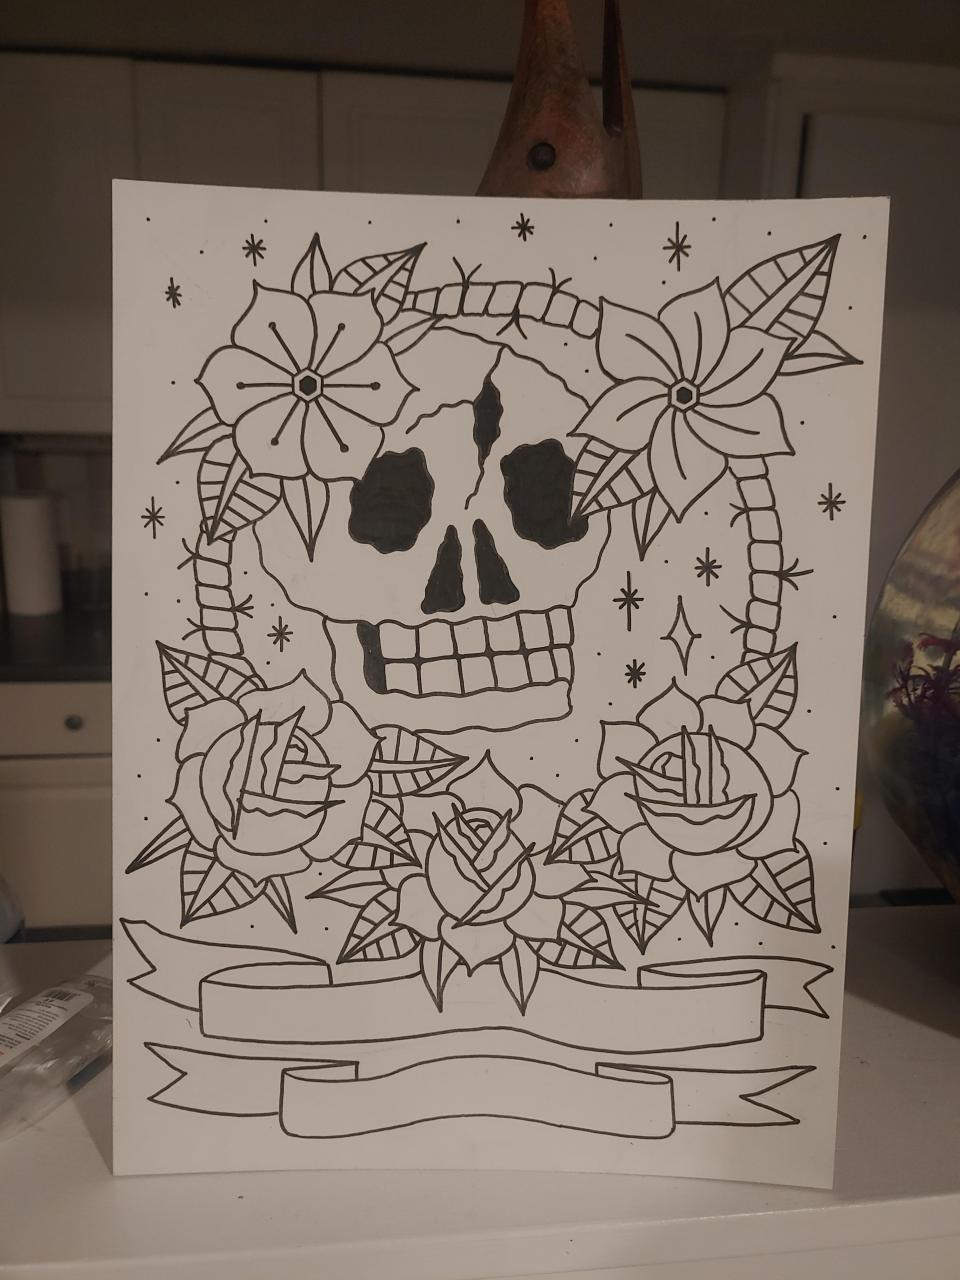 Slowly getting better at art. Dream in life is to be a tattoo artist!